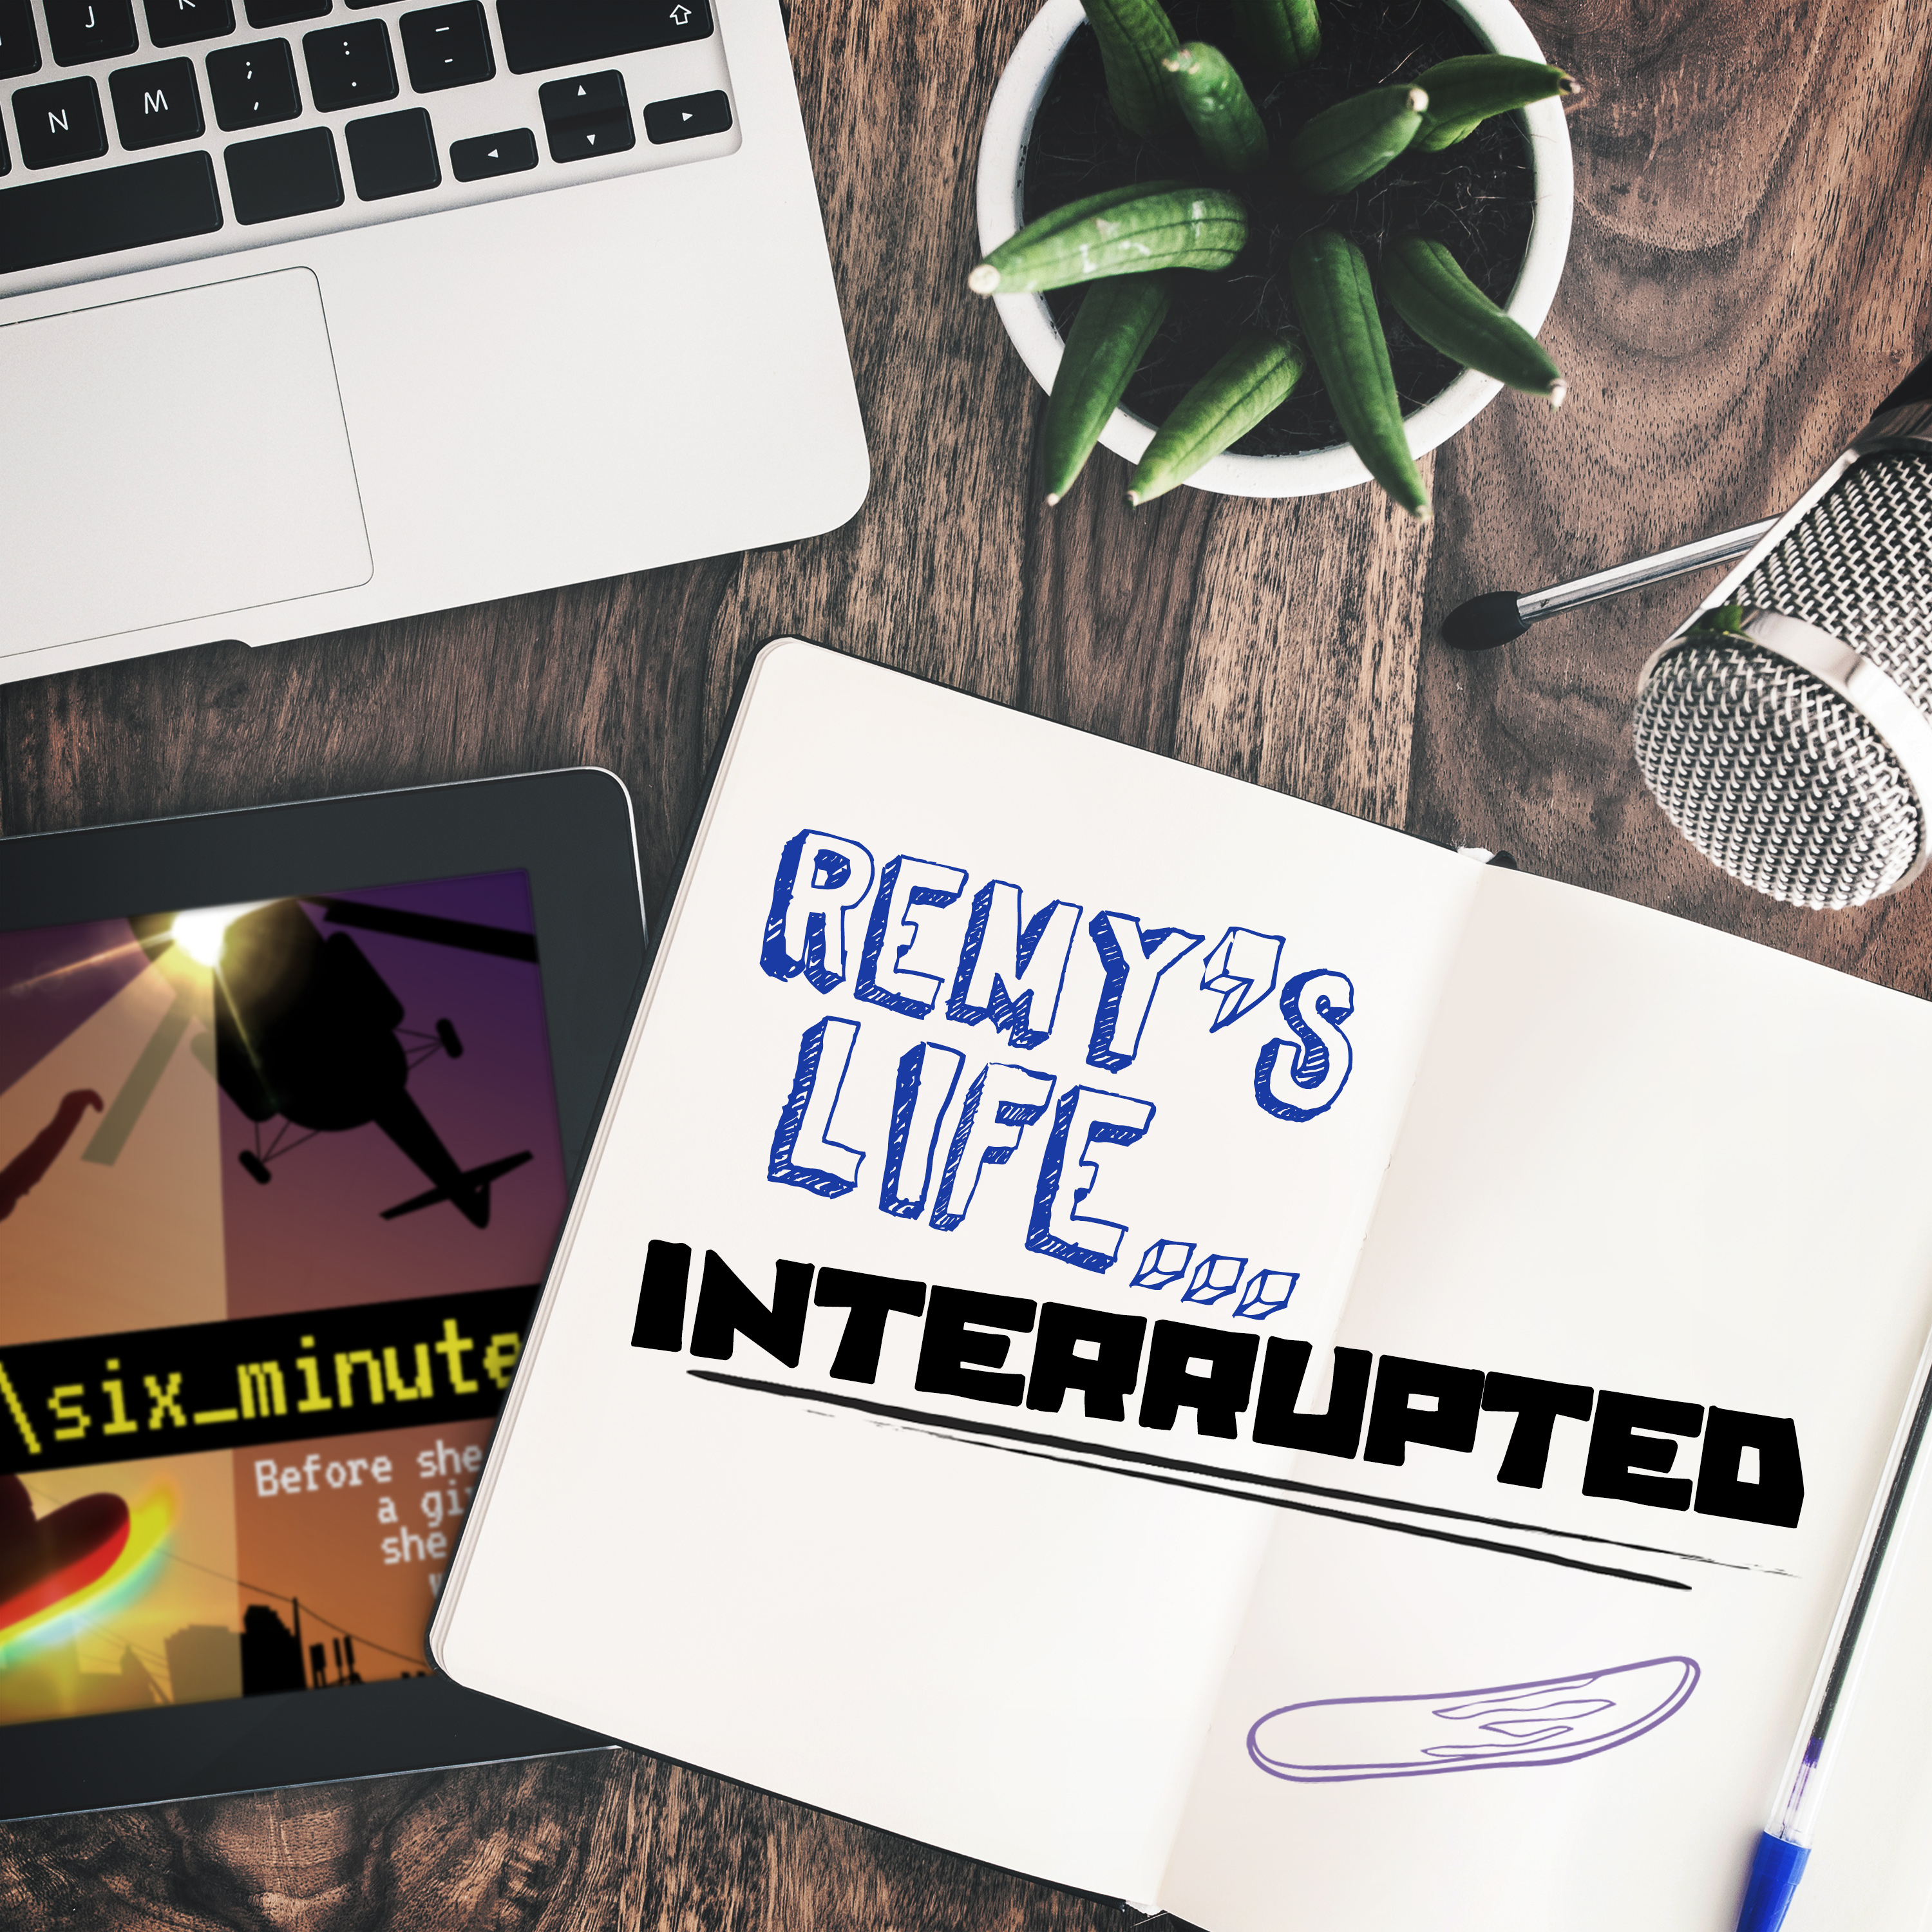 Remy's Life Interrupted: EP84